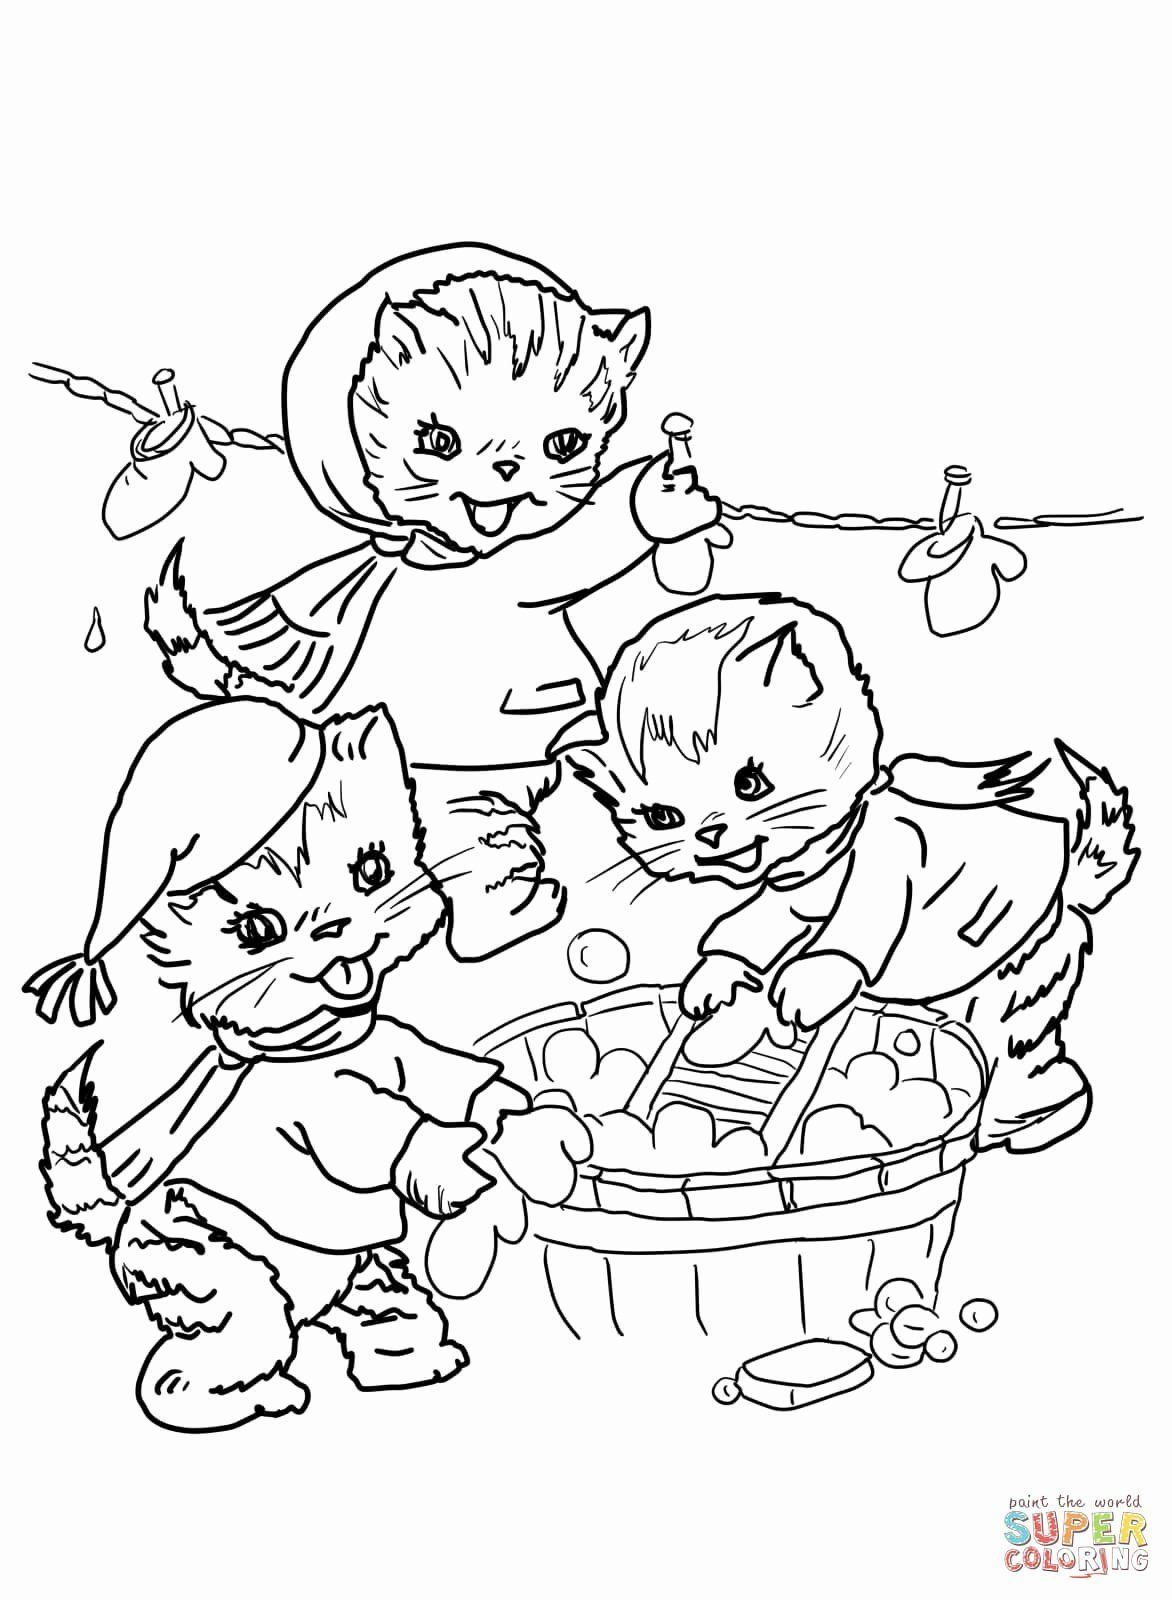 Coloring Pages Of Kittens Inspirational The Three Little